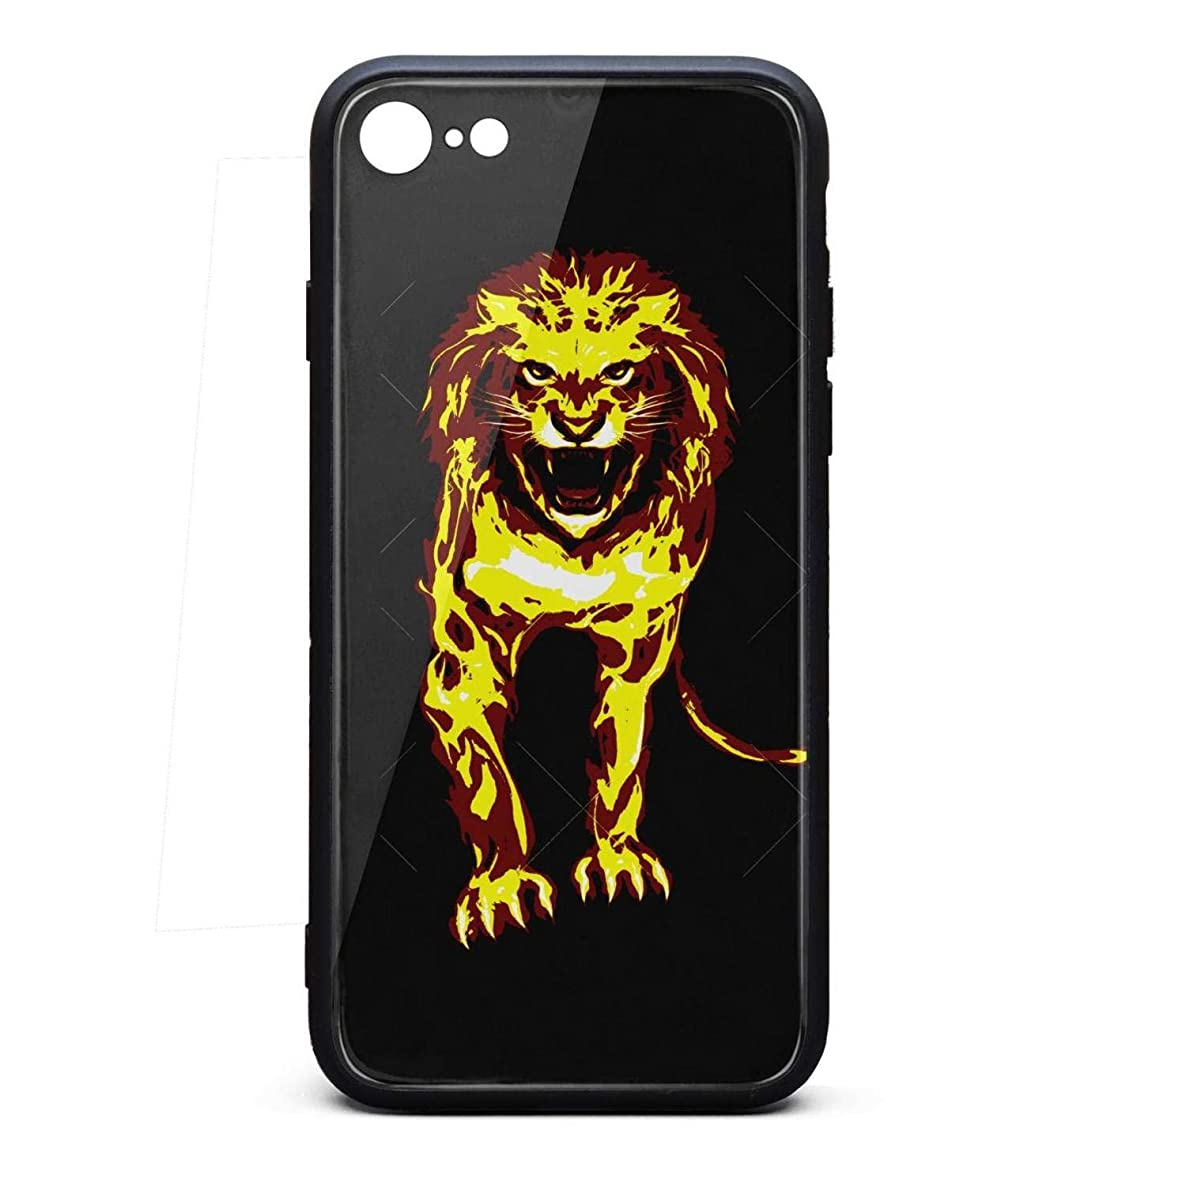 IPhone7 Phone Phone case iPhone8 Screen Protector x7 case top Pretty Very fire Shock-Absorption Scratch-Resistant for iphone7/iphone8